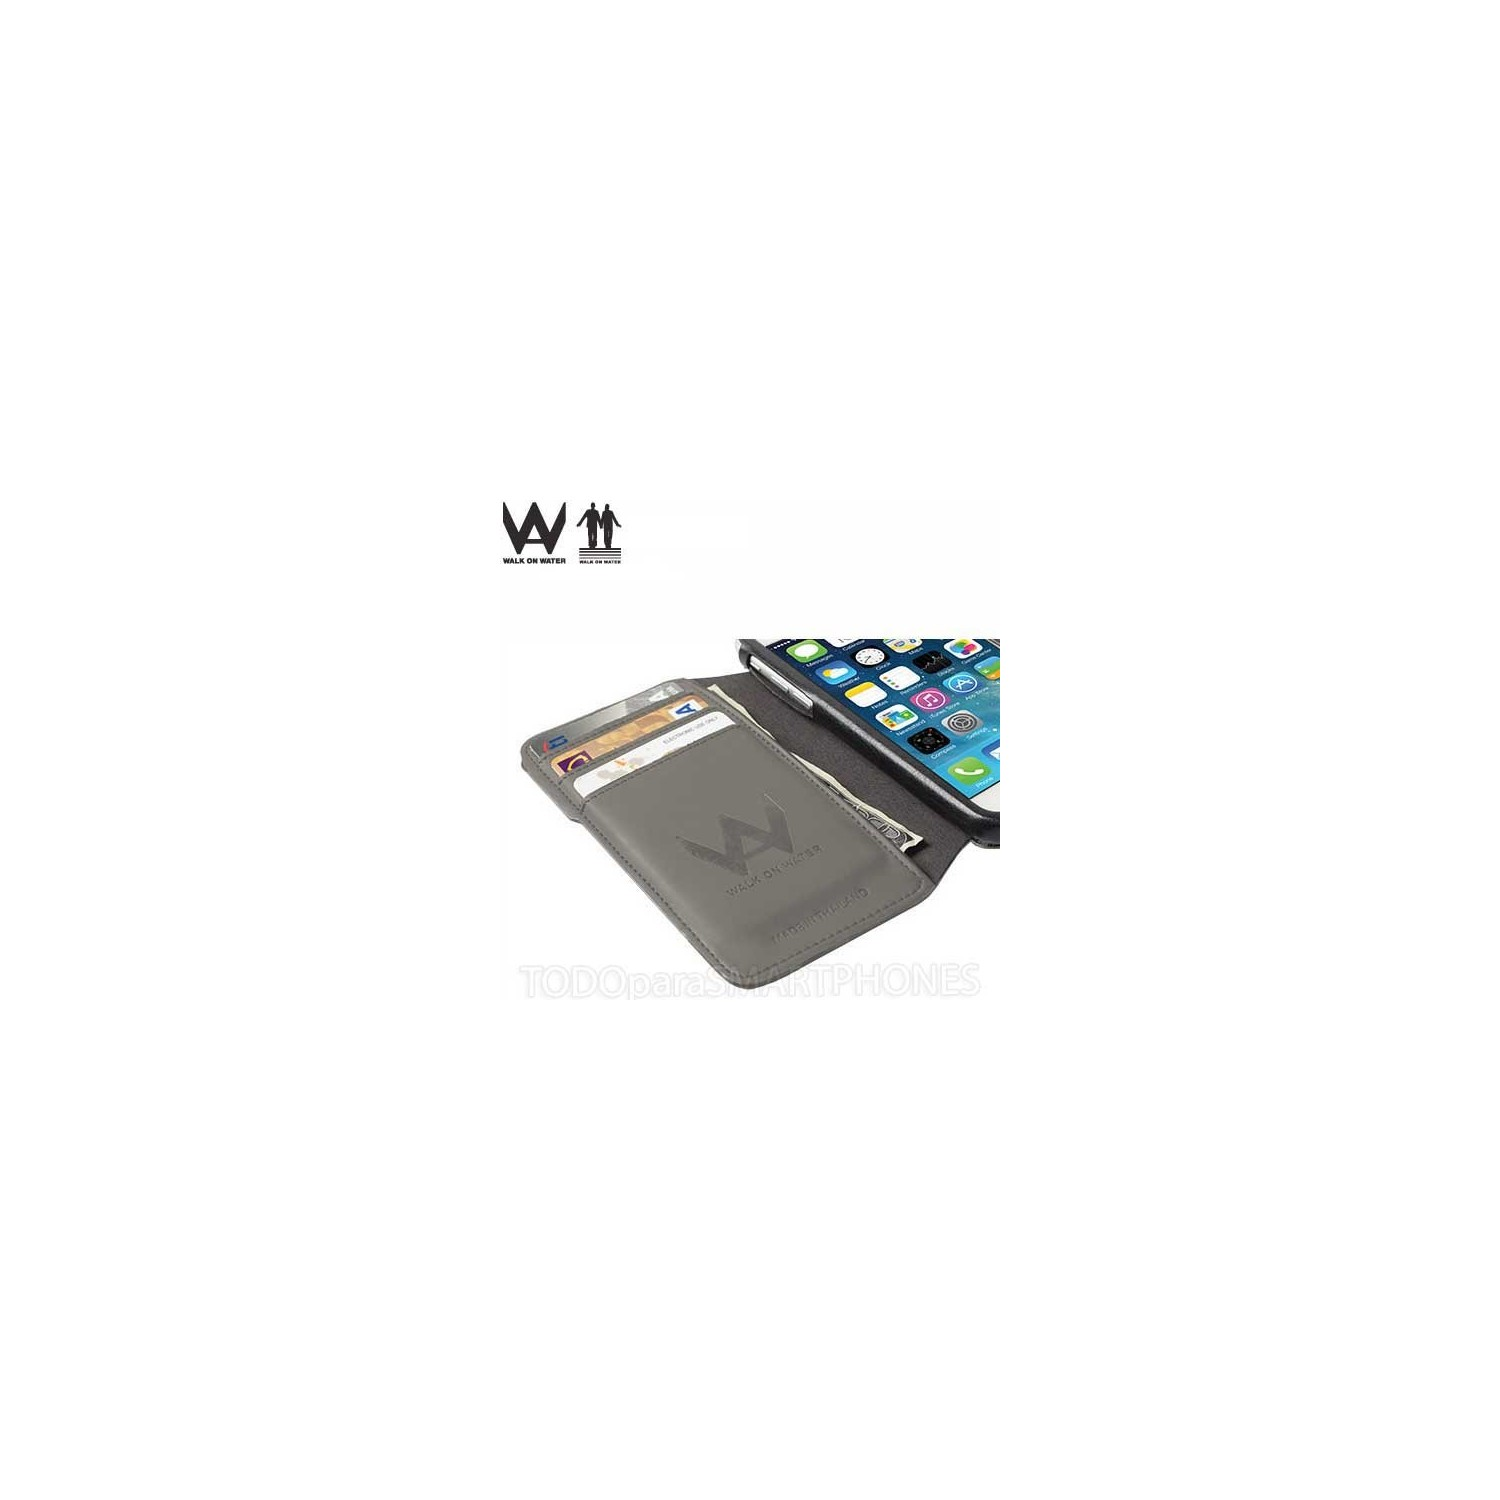 Case - Walk on Water Drop Off Carry Stand Case for iPhone 6 Plus - Gray